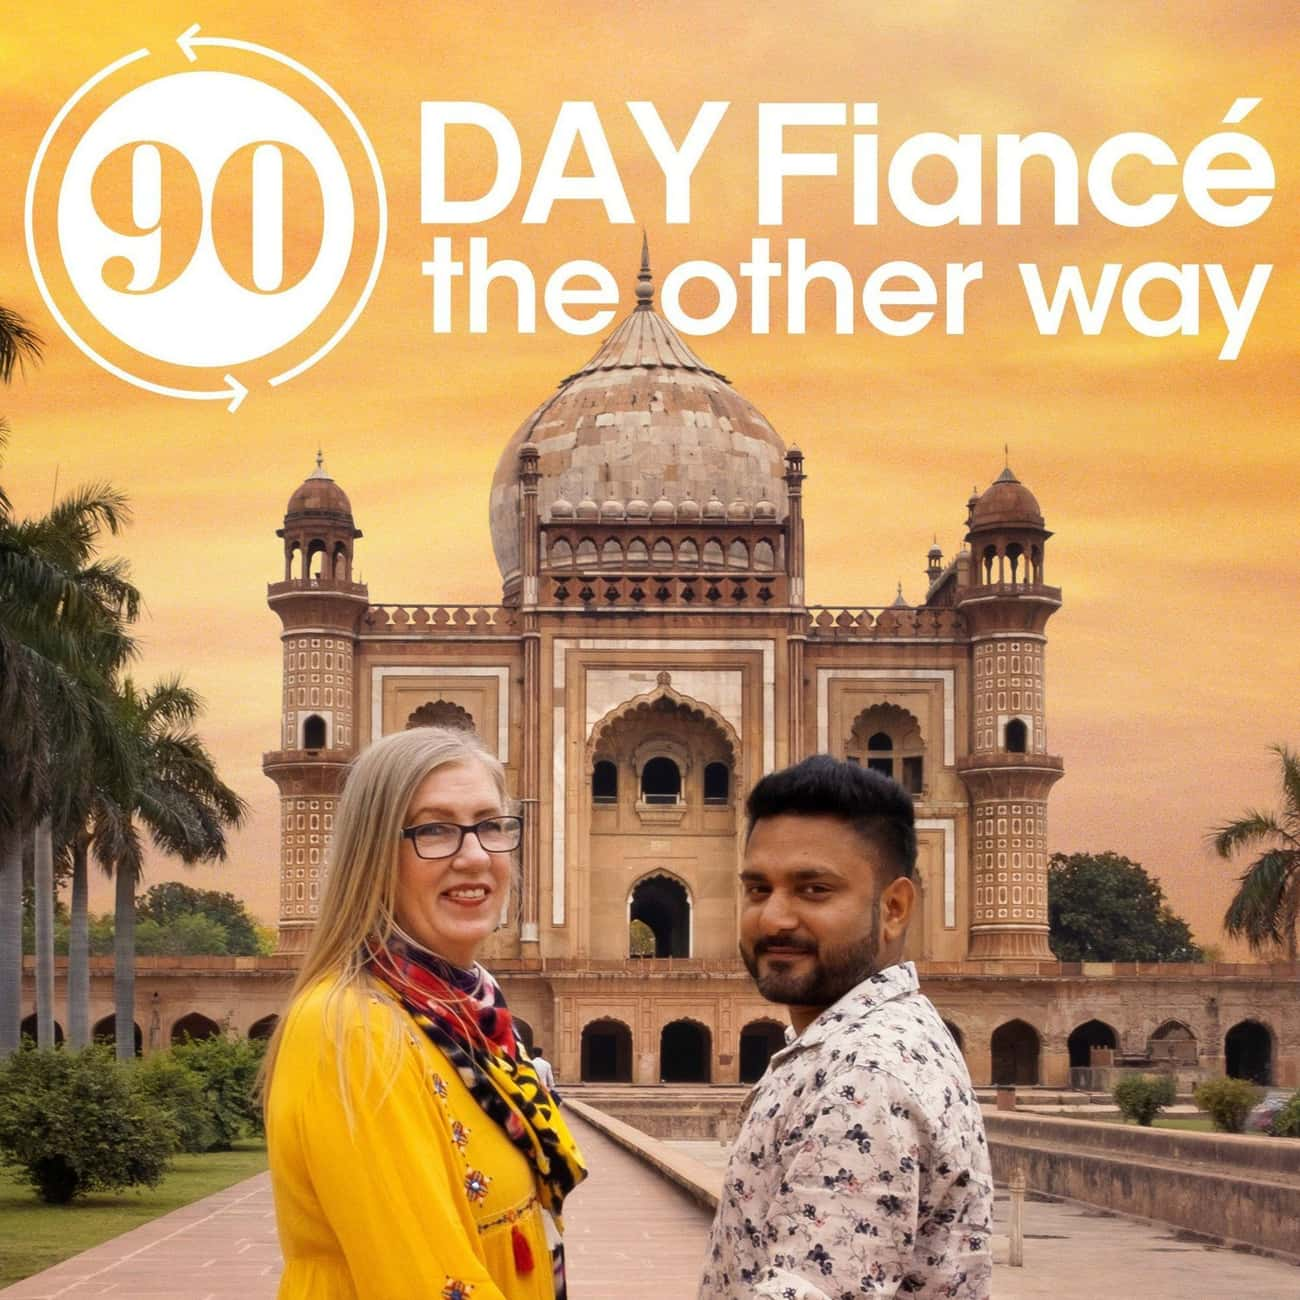 90 Day Fiancé: The Other Way